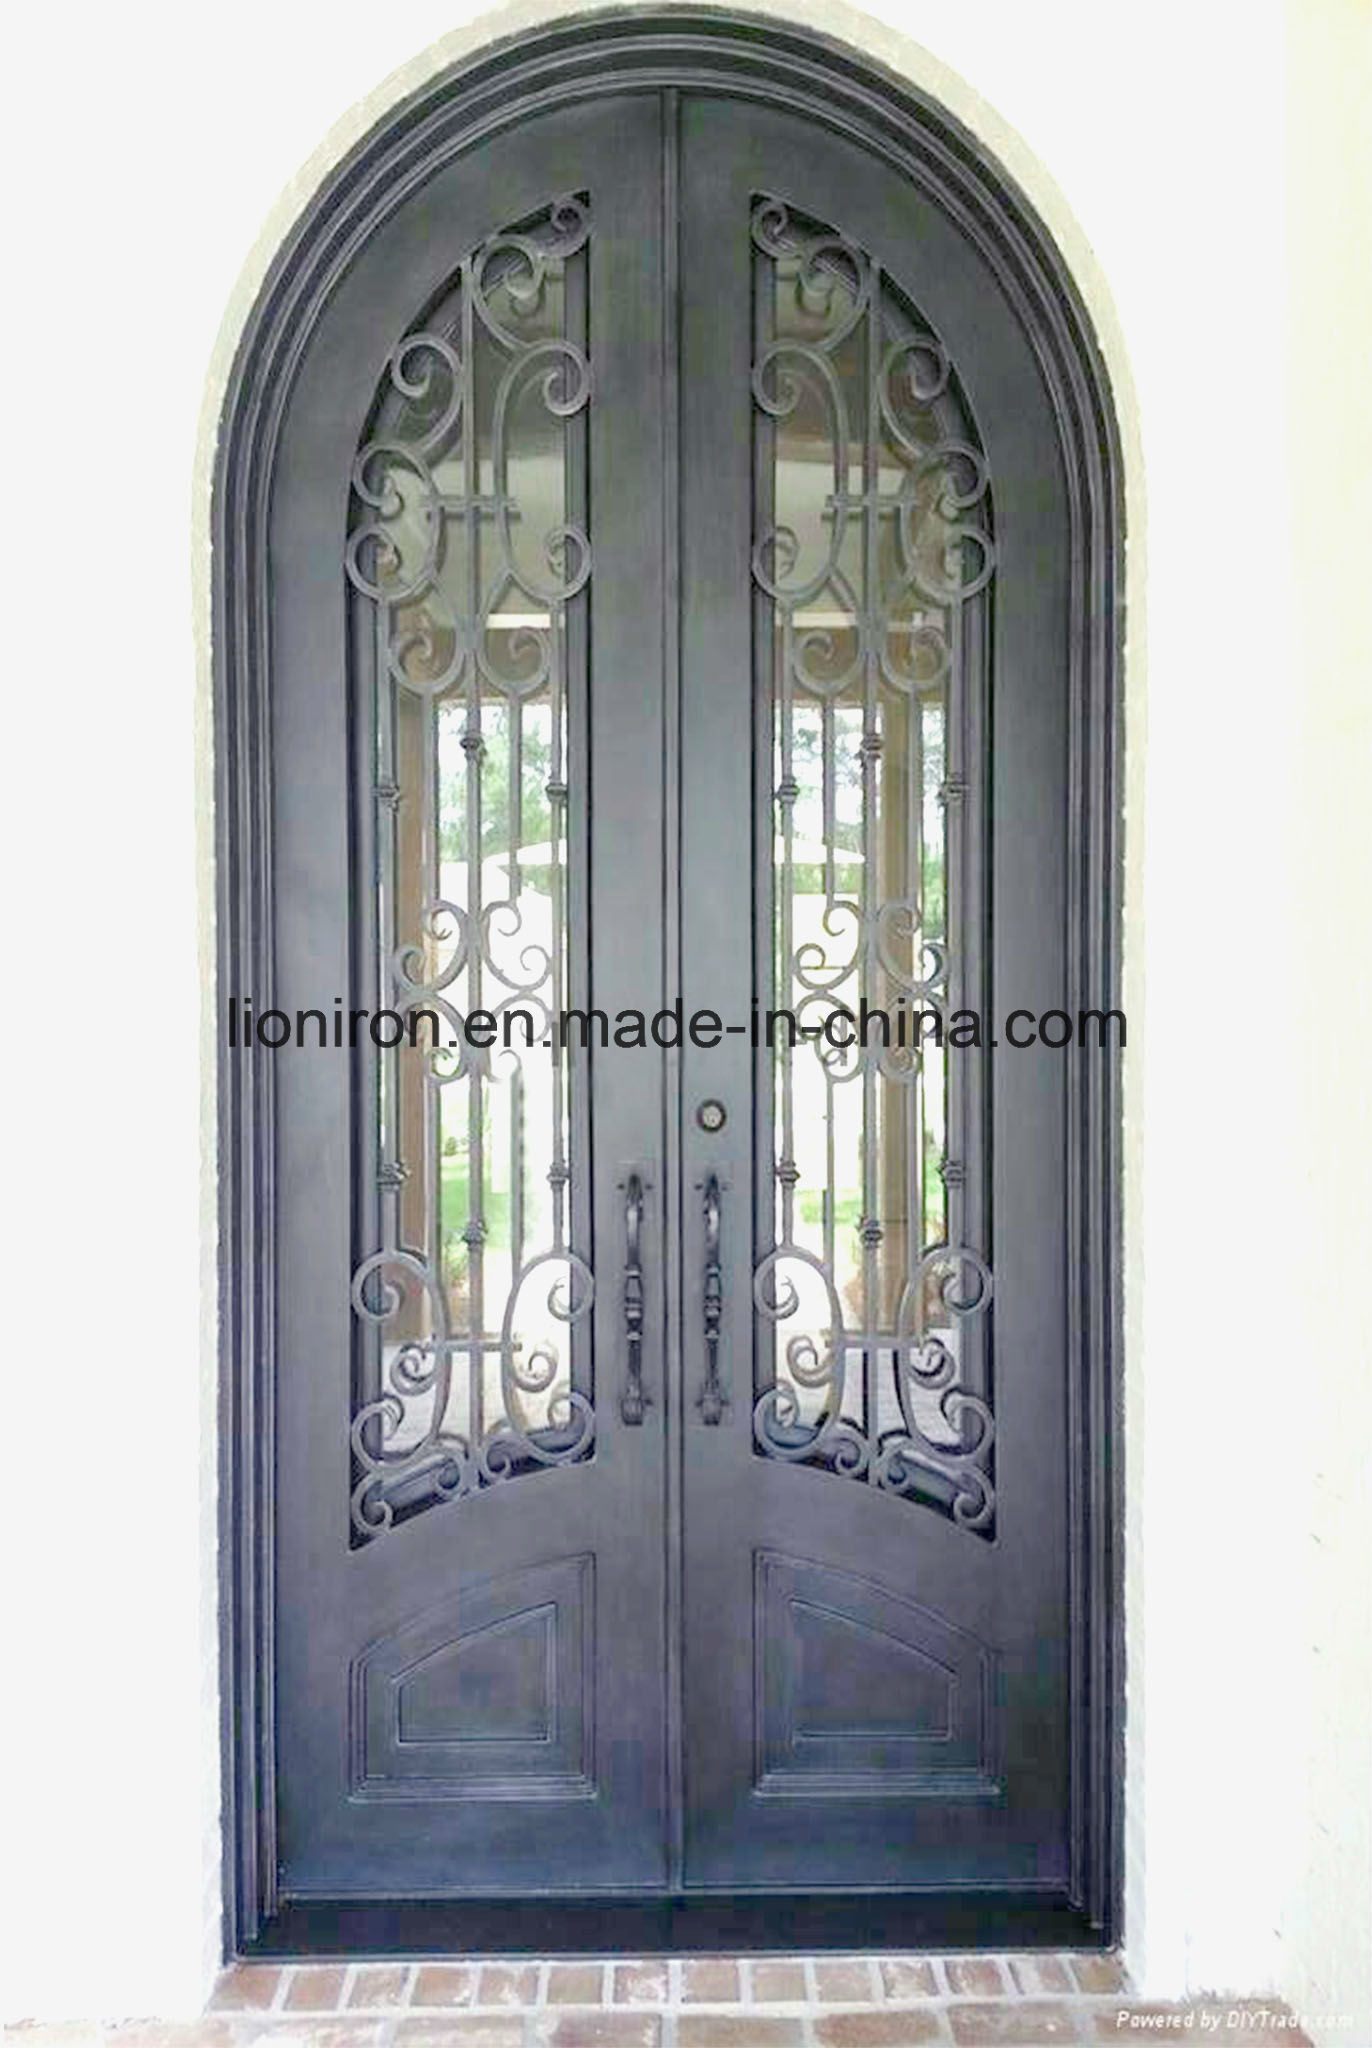 Metal Security Door With Iron Gates Models New Design Screen